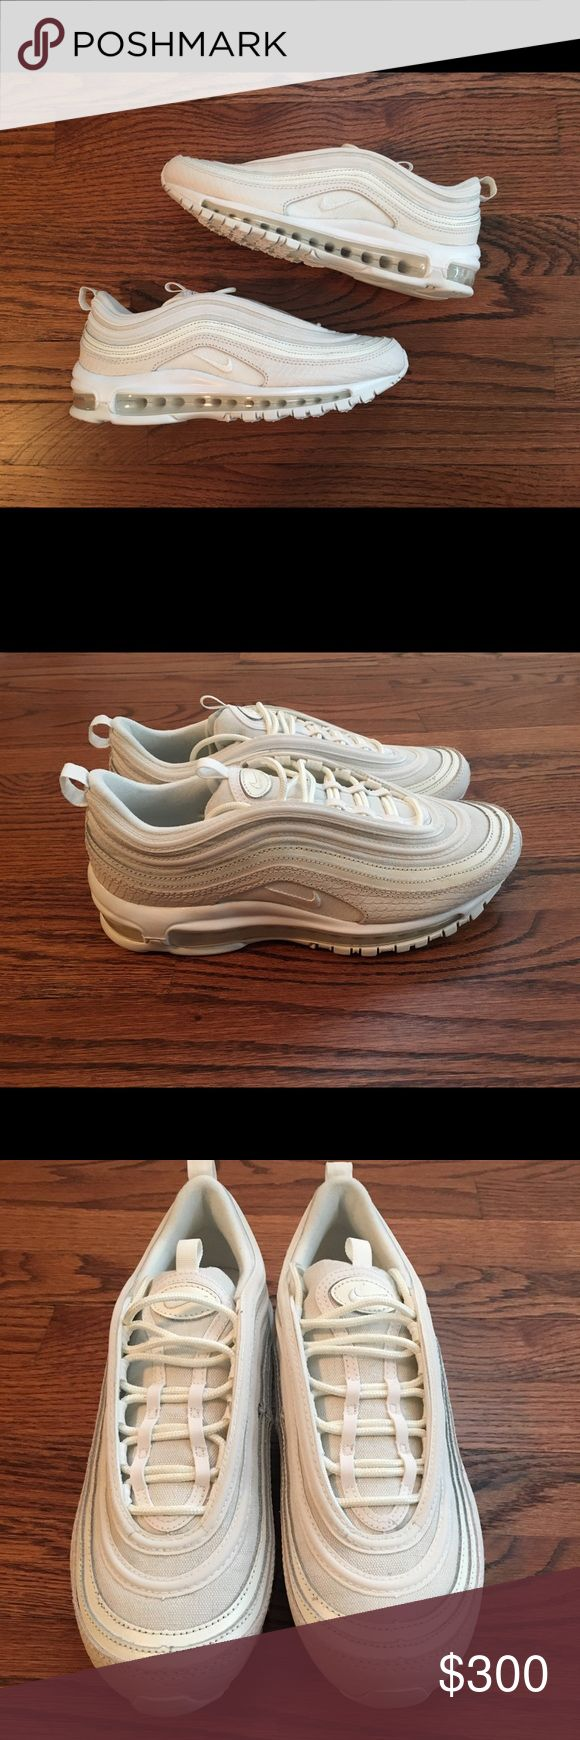 Nike Air Max 97 Summer Scales Summit Wht Snakeskin Brand new, without box. Summit White. Size: 8. VERY RARE, limited 2017 release. Please note bottom on heel marks in picture. Please make OFFICIAL OFFERS and BUNDLES! Fast shipping!! Nike Shoes Sneakers